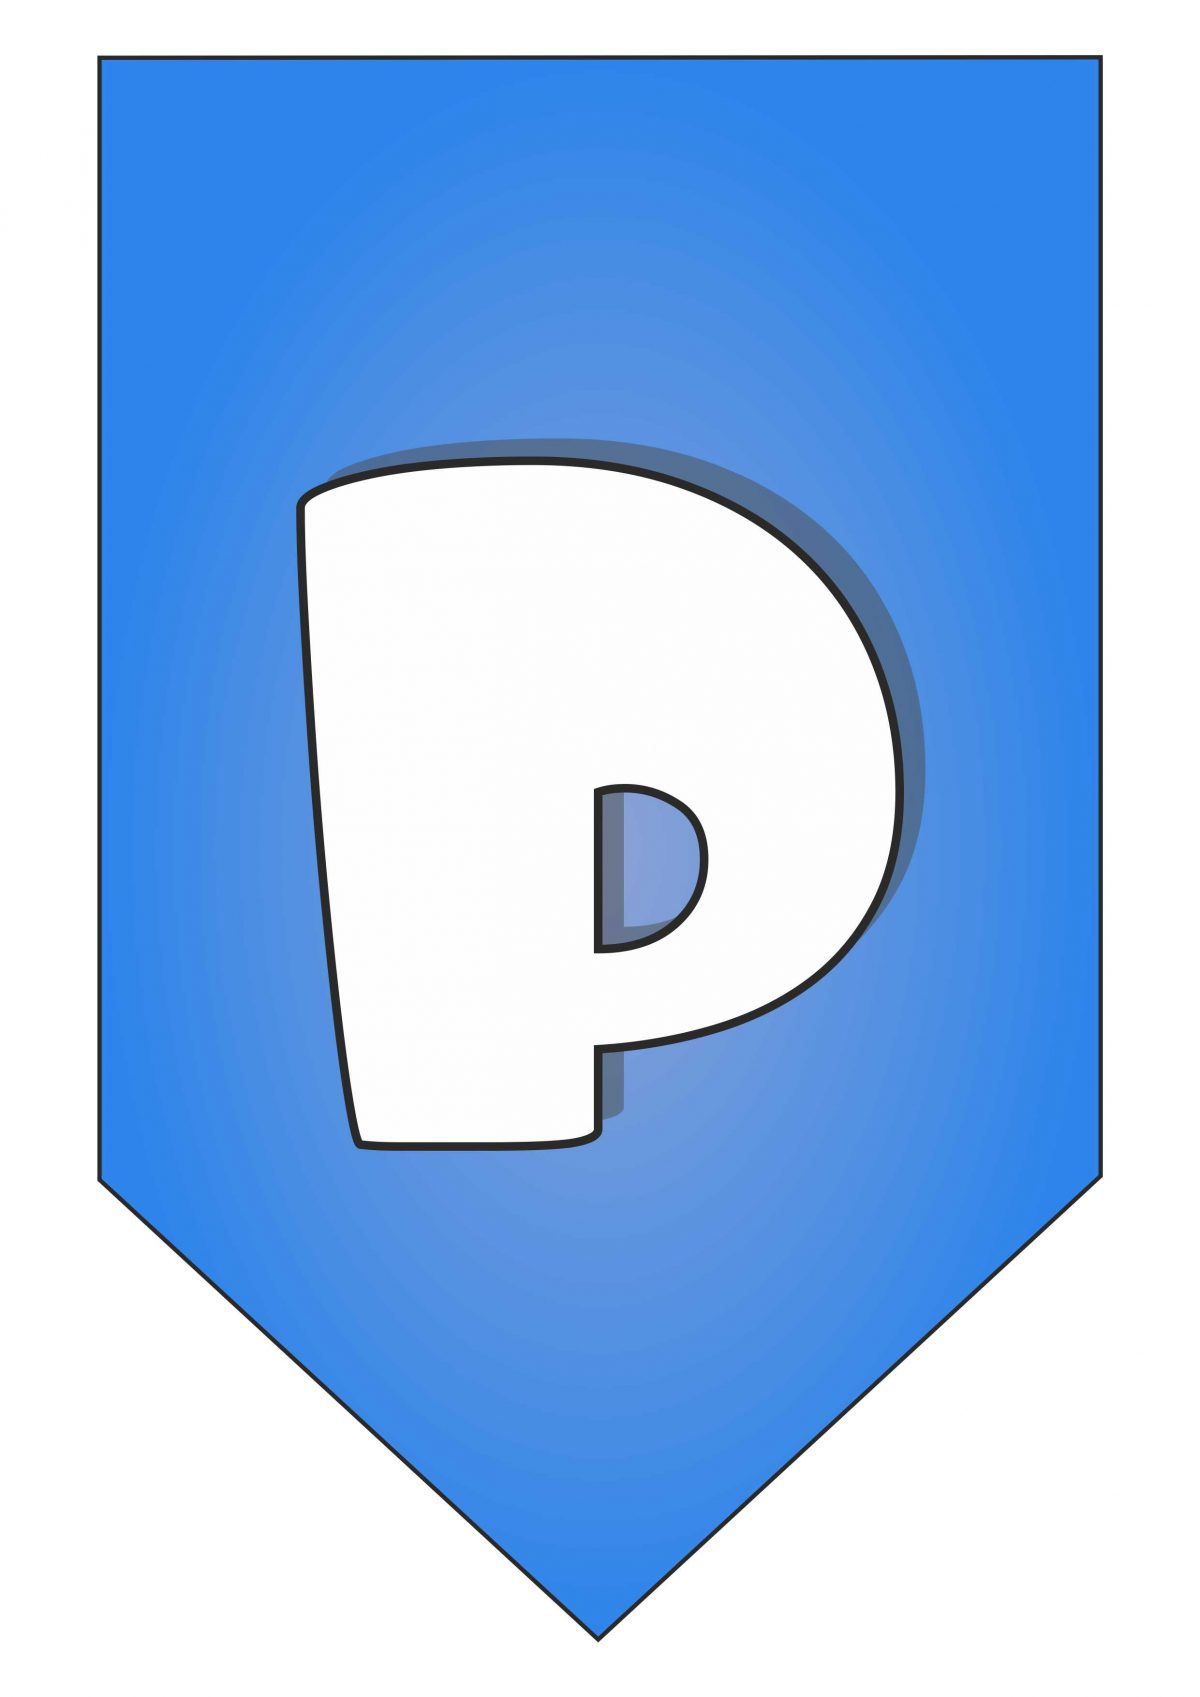 Letter P on blue background for Happy Birthday Banner